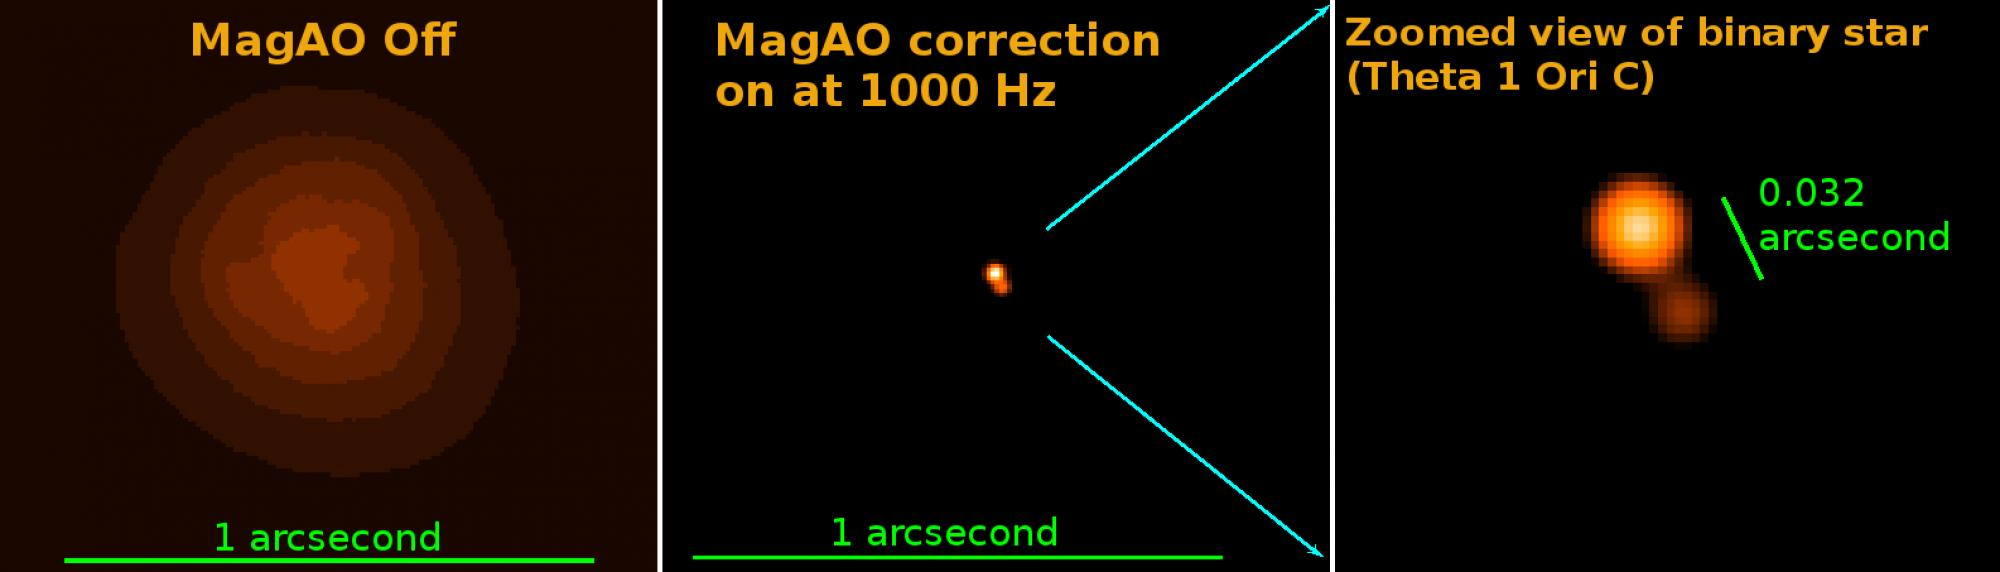 """The power of visible light adaptive optics: On the left is a """"normal"""" photo of the theta 1 Ori C binary star in red light. The middle image shows the same object, but with MagAO's adaptive optics system turned on.  Eliminating the atmospheric blurring, th"""